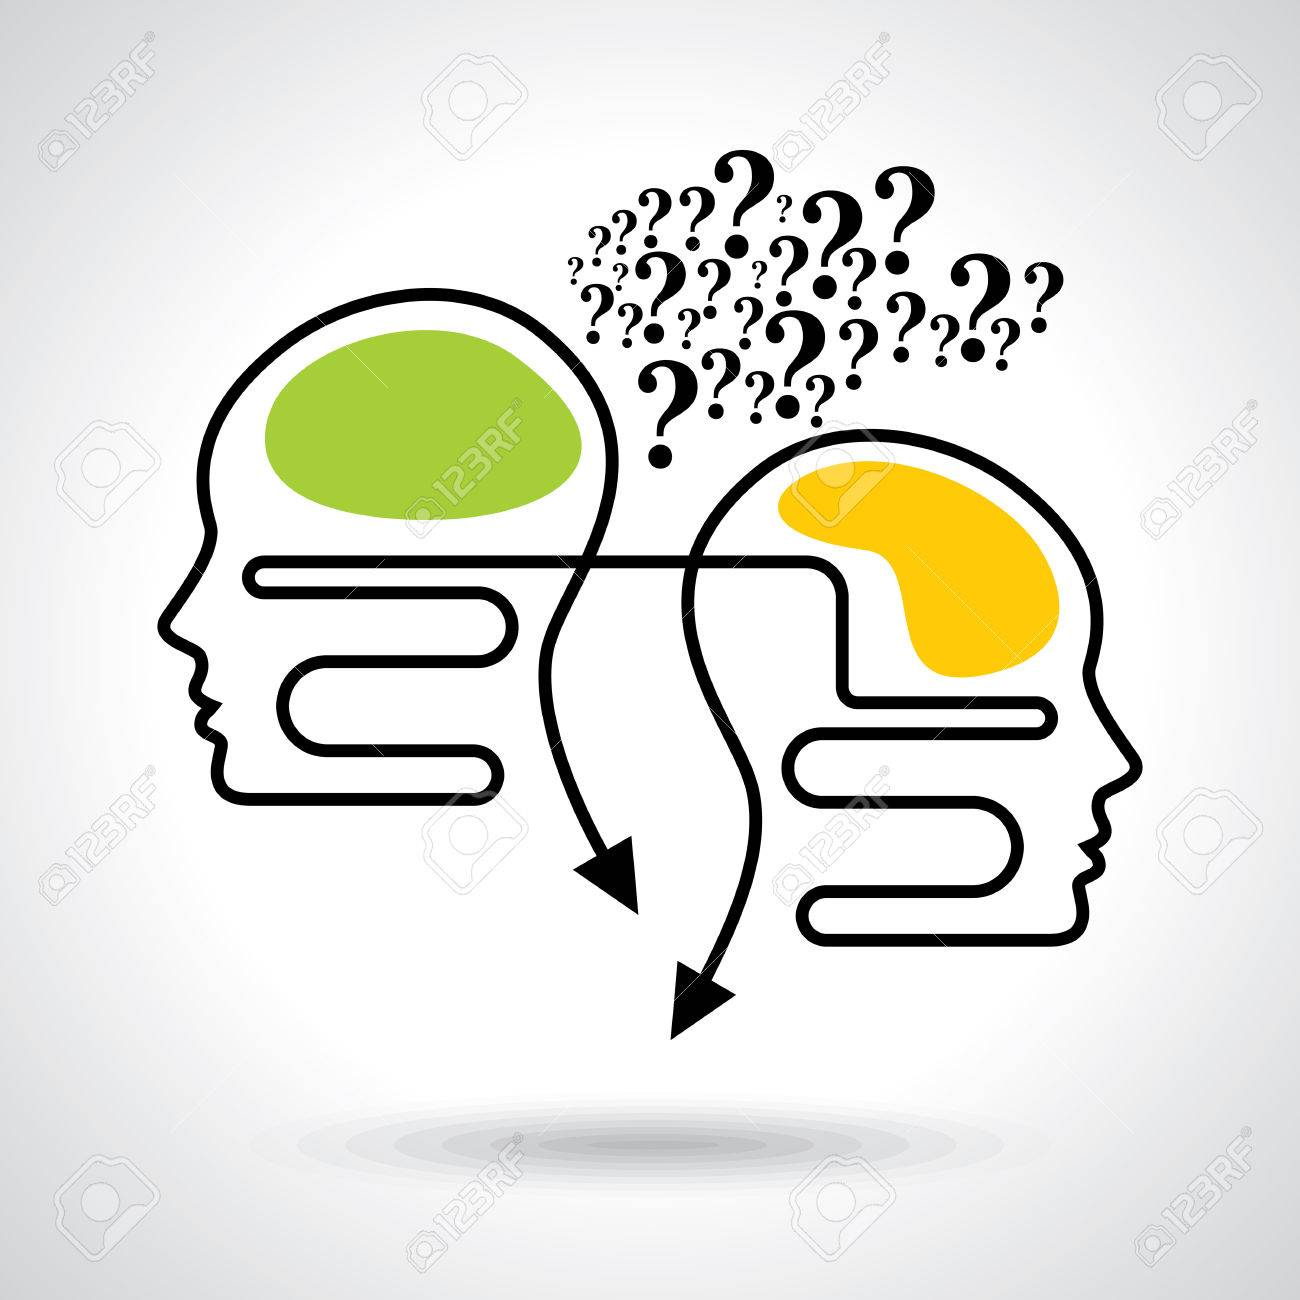 Thoughts and options illustration of head with arrows Standard-Bild - 37109732